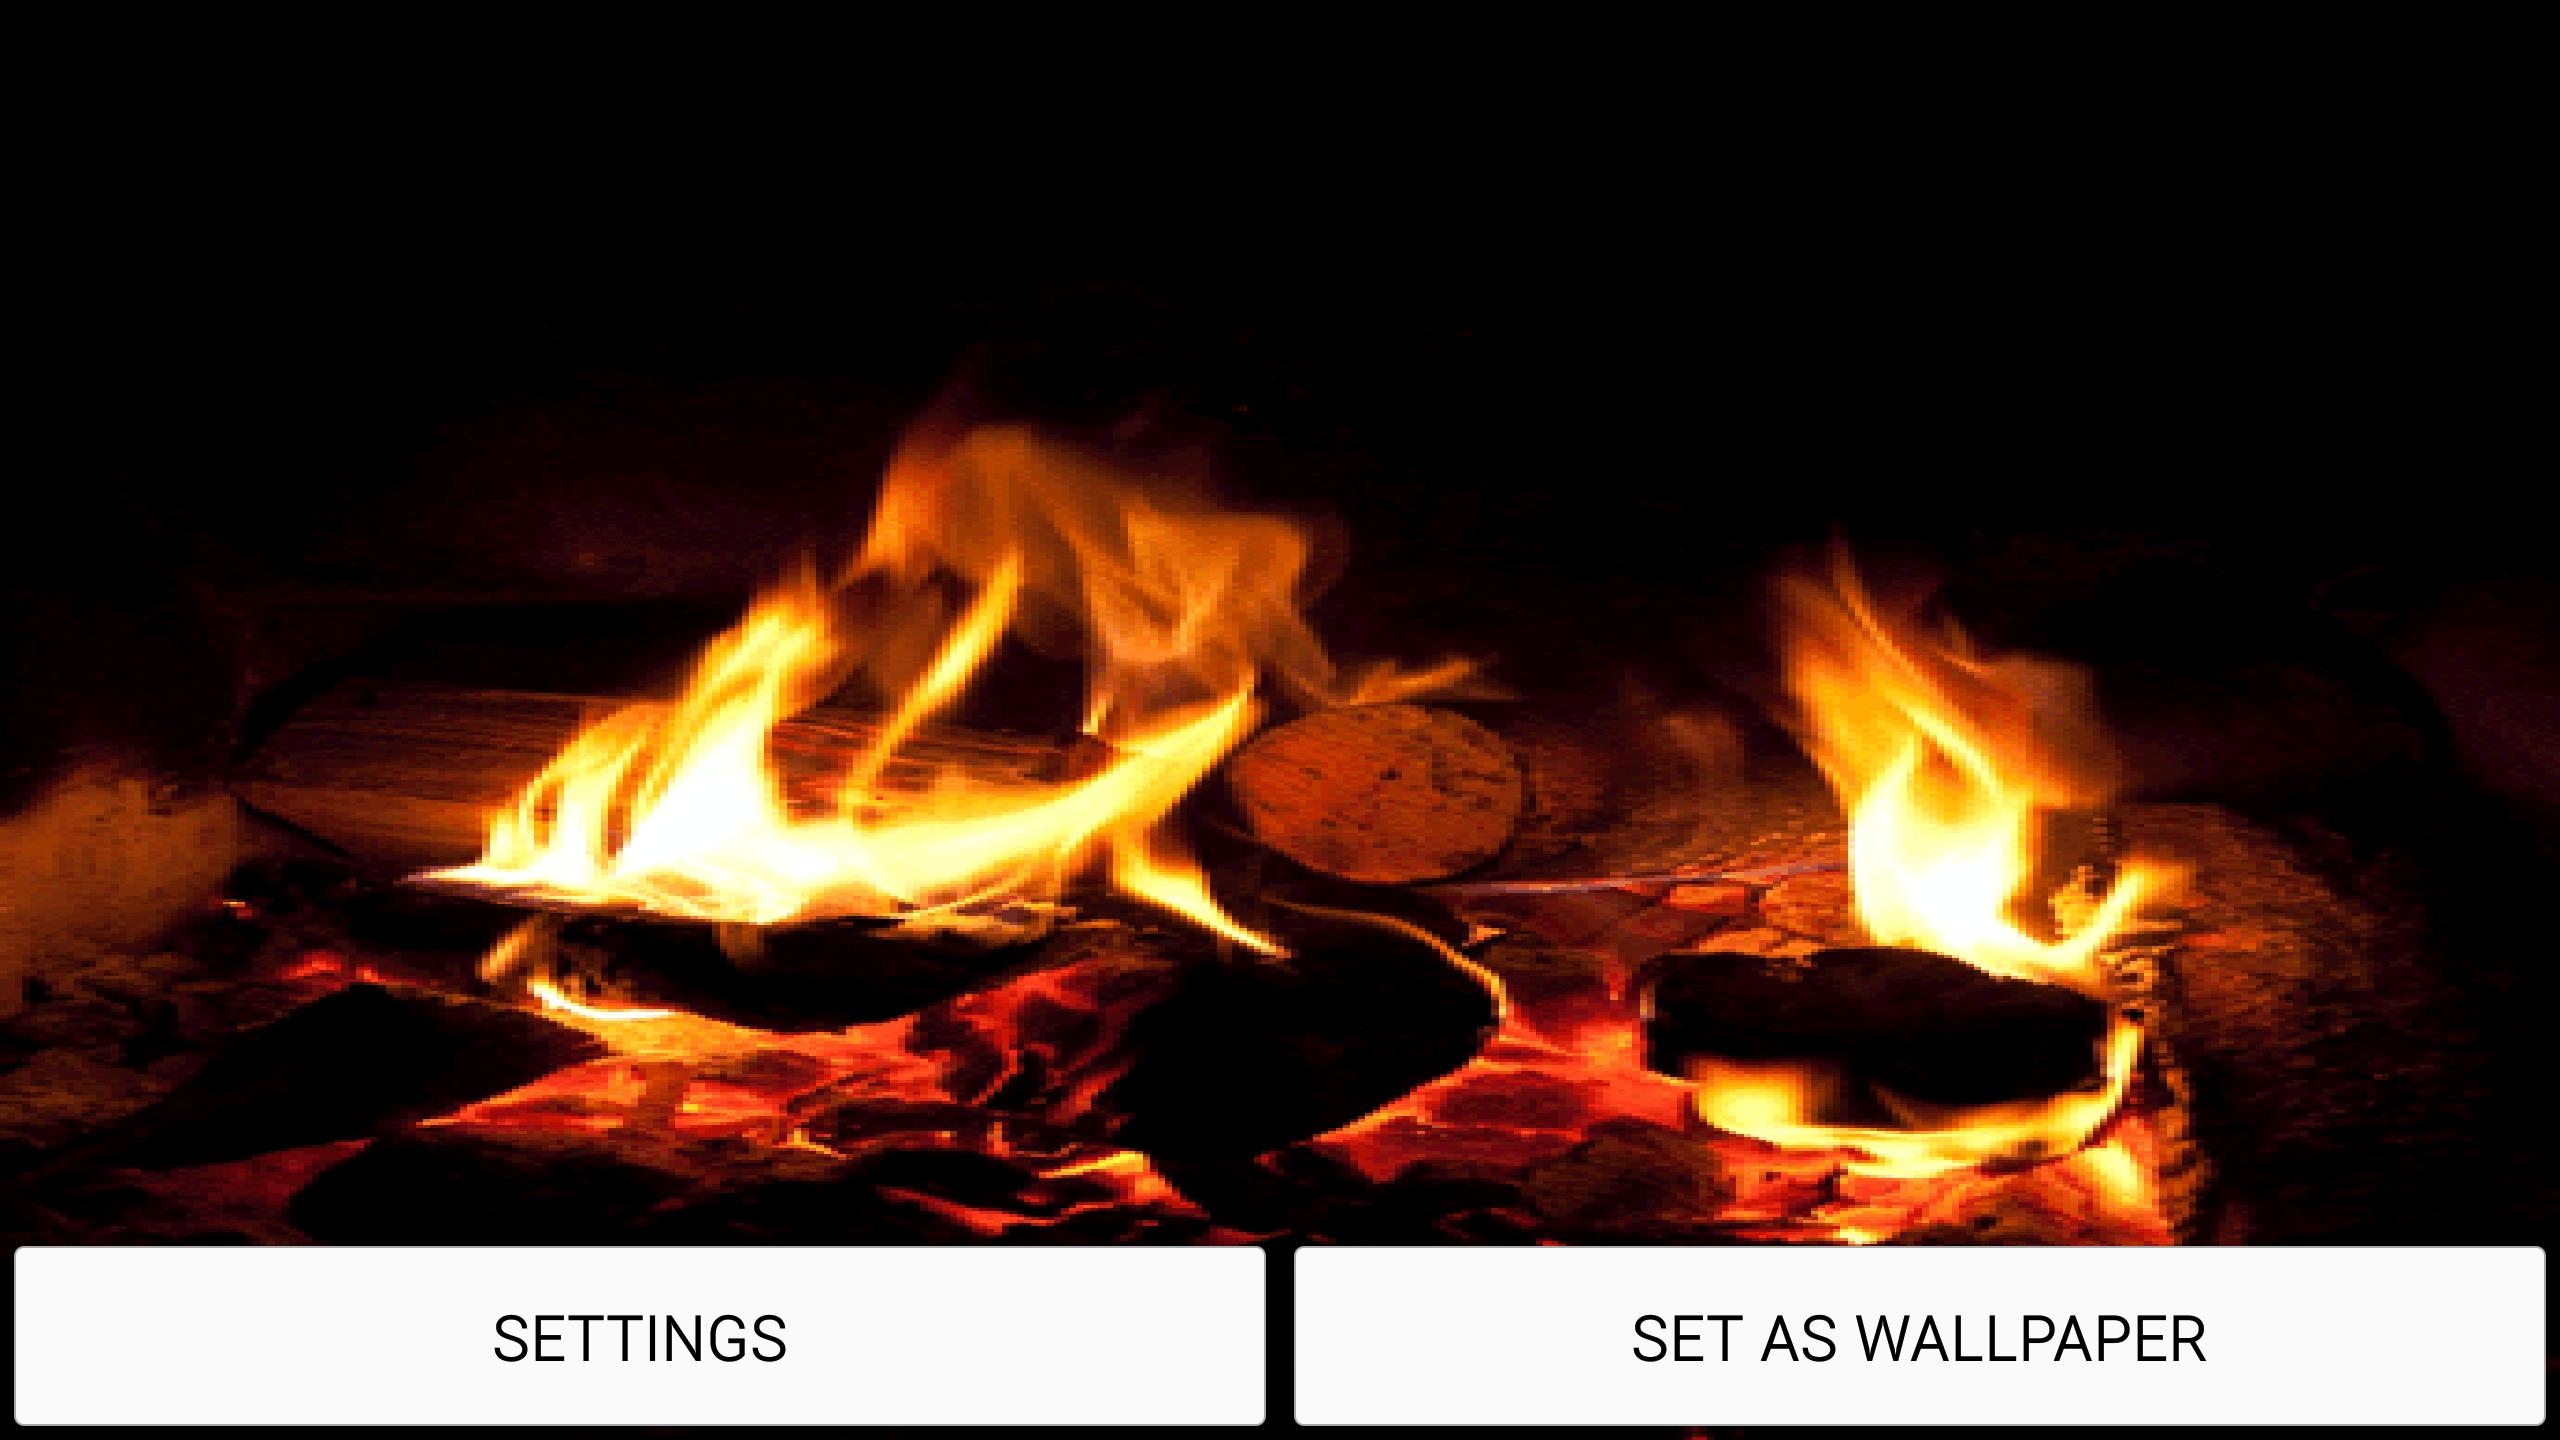 Fireplace Sound Live Wallpaper for Android - APK Download